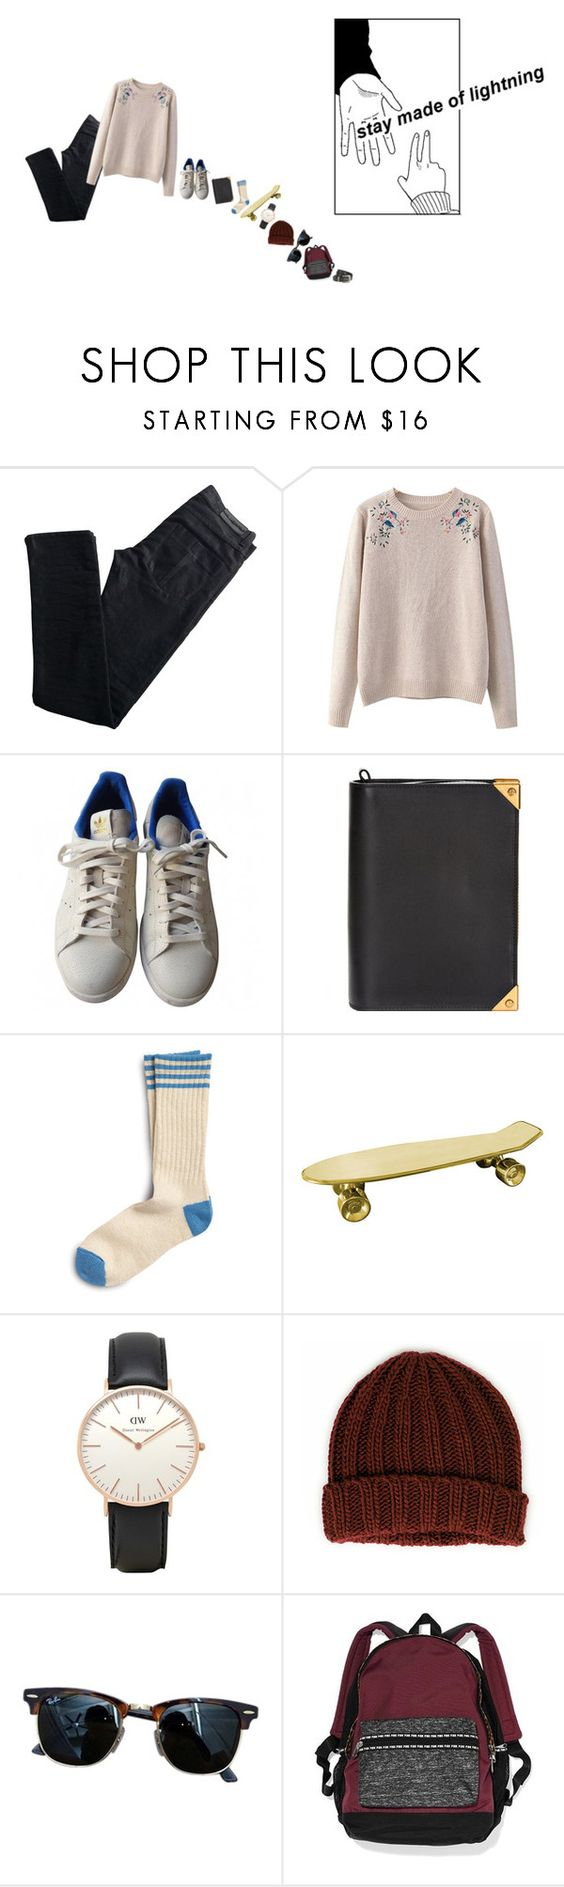 """""""Untitled #1443"""" by my-artsy-soul ❤ liked on Polyvore featuring Karl Lagerfeld, Chicnova Fashion, adidas, Alexander Wang, Sperry, Seletti, Daniel Wellington, Wigwam, Ray-Ban and Victoria's Secret"""